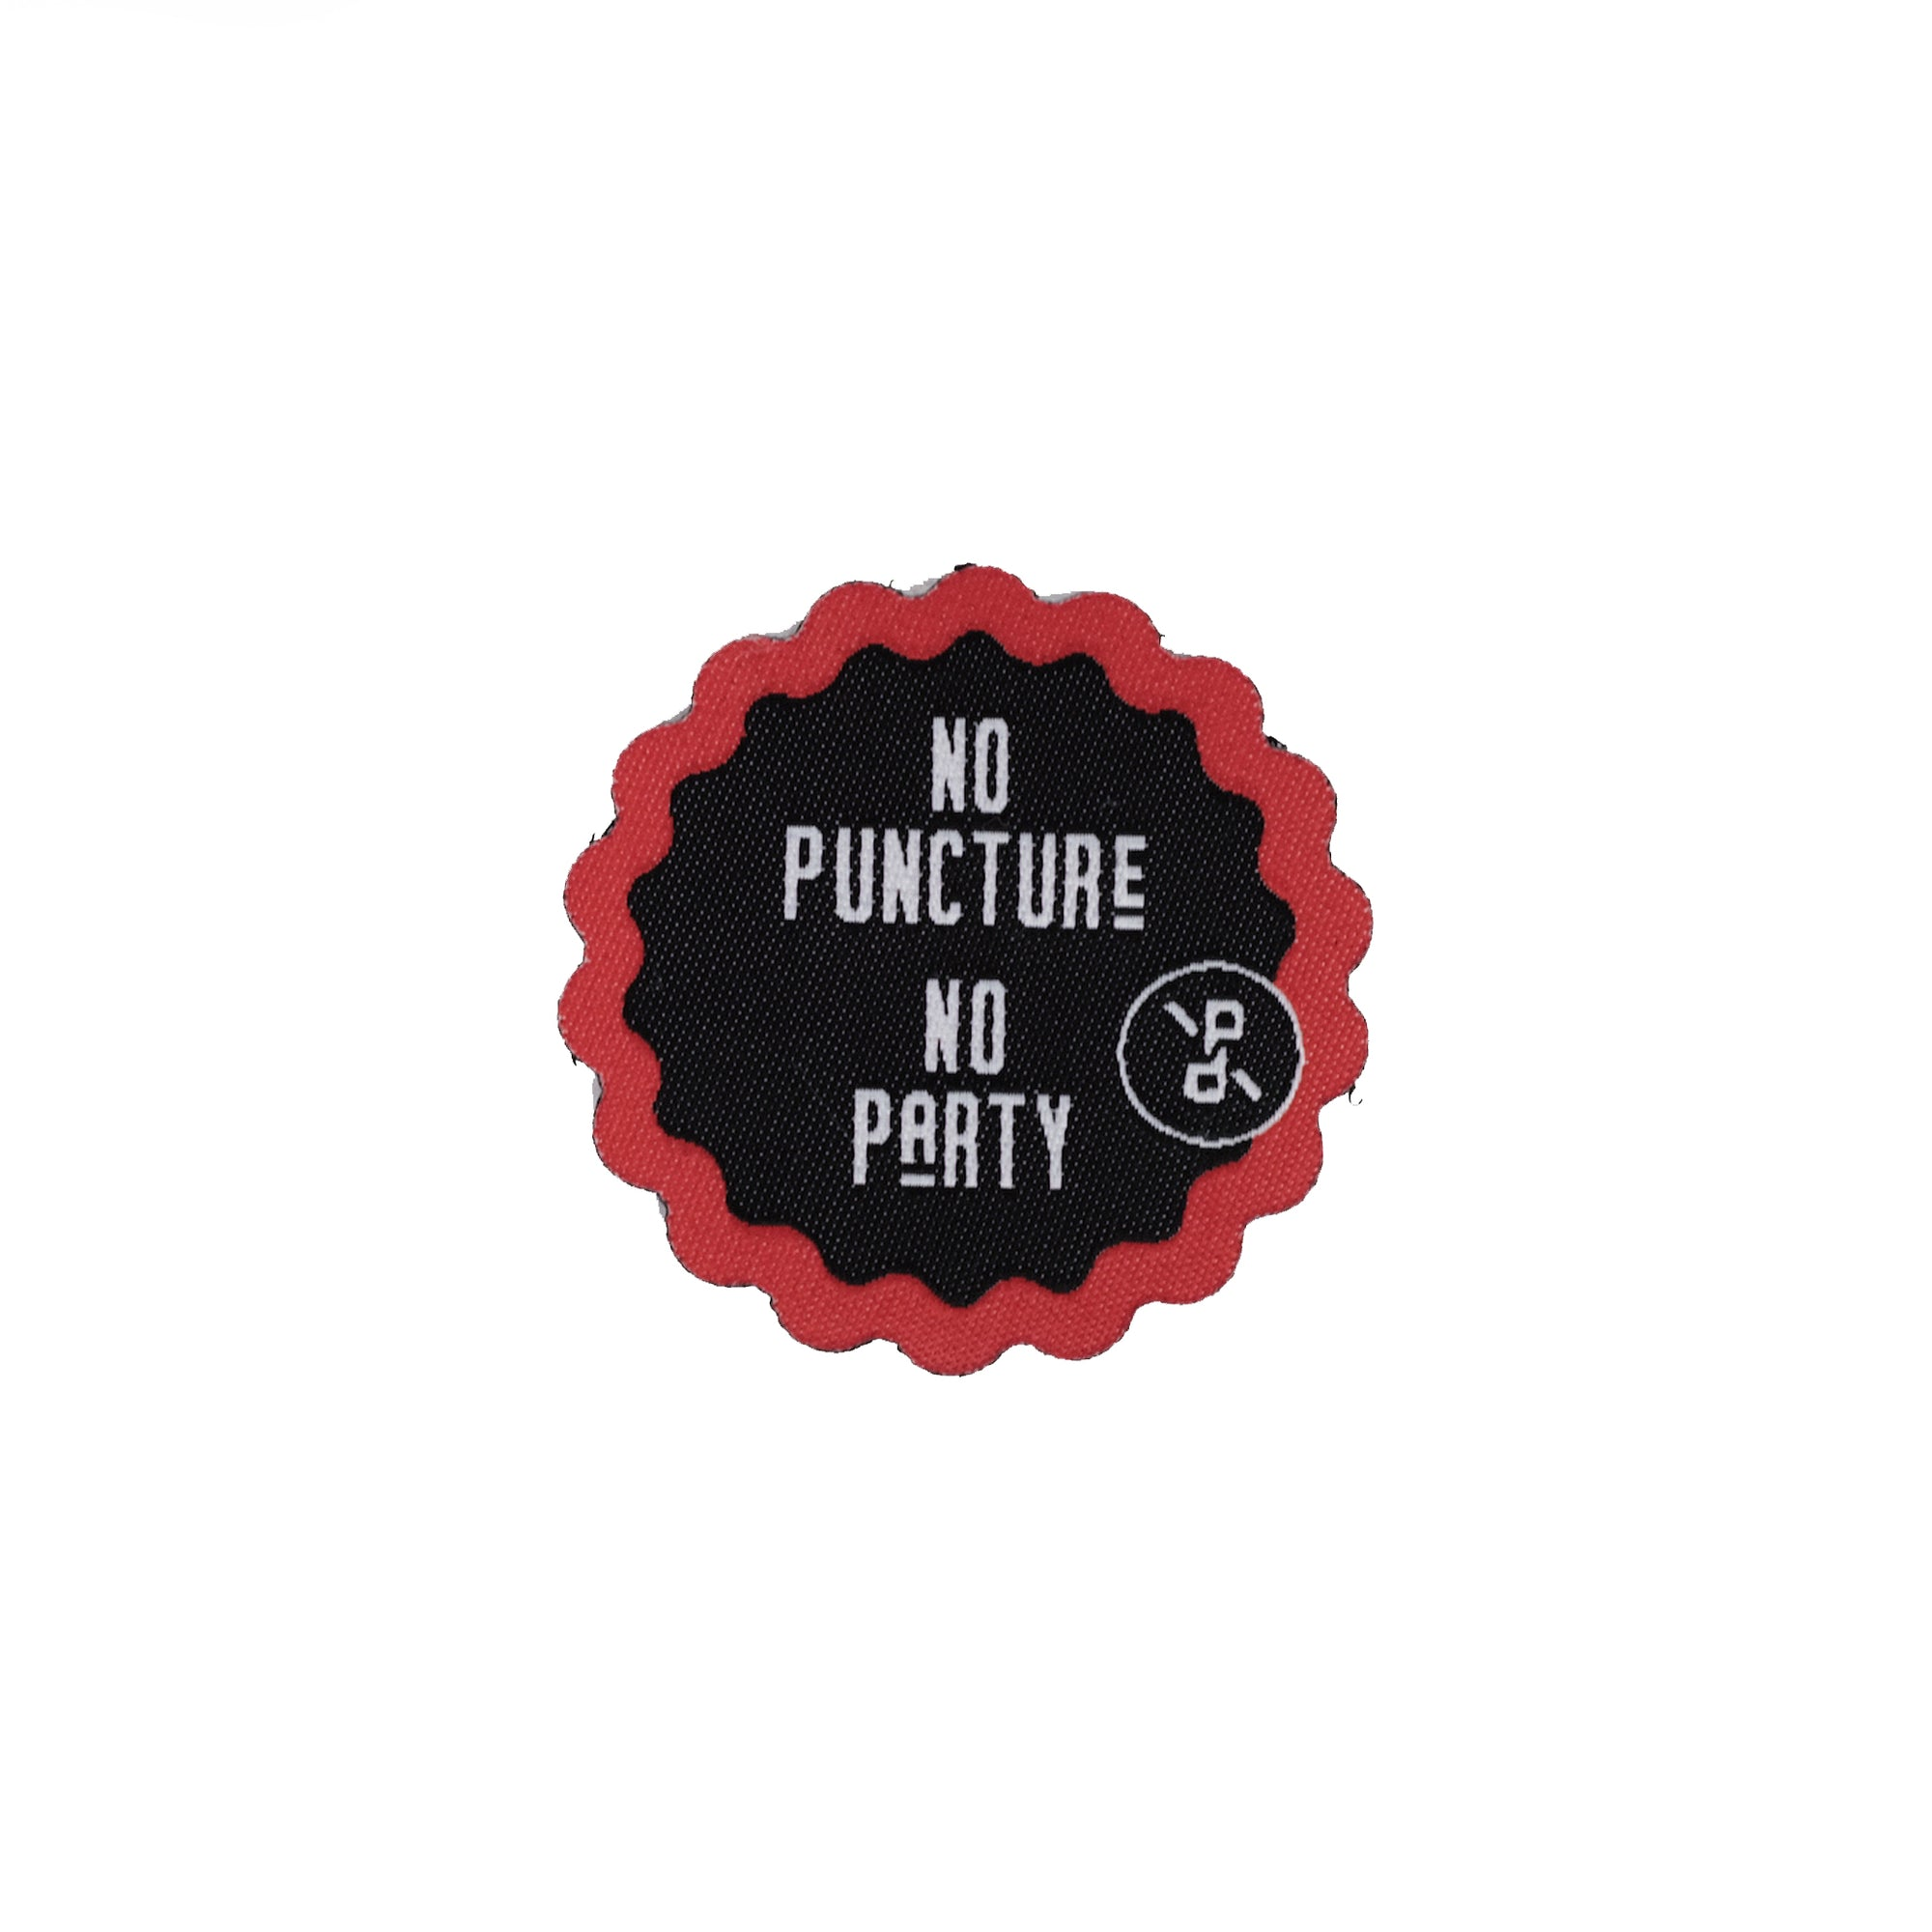 Velcro patch - No Puncture No Party